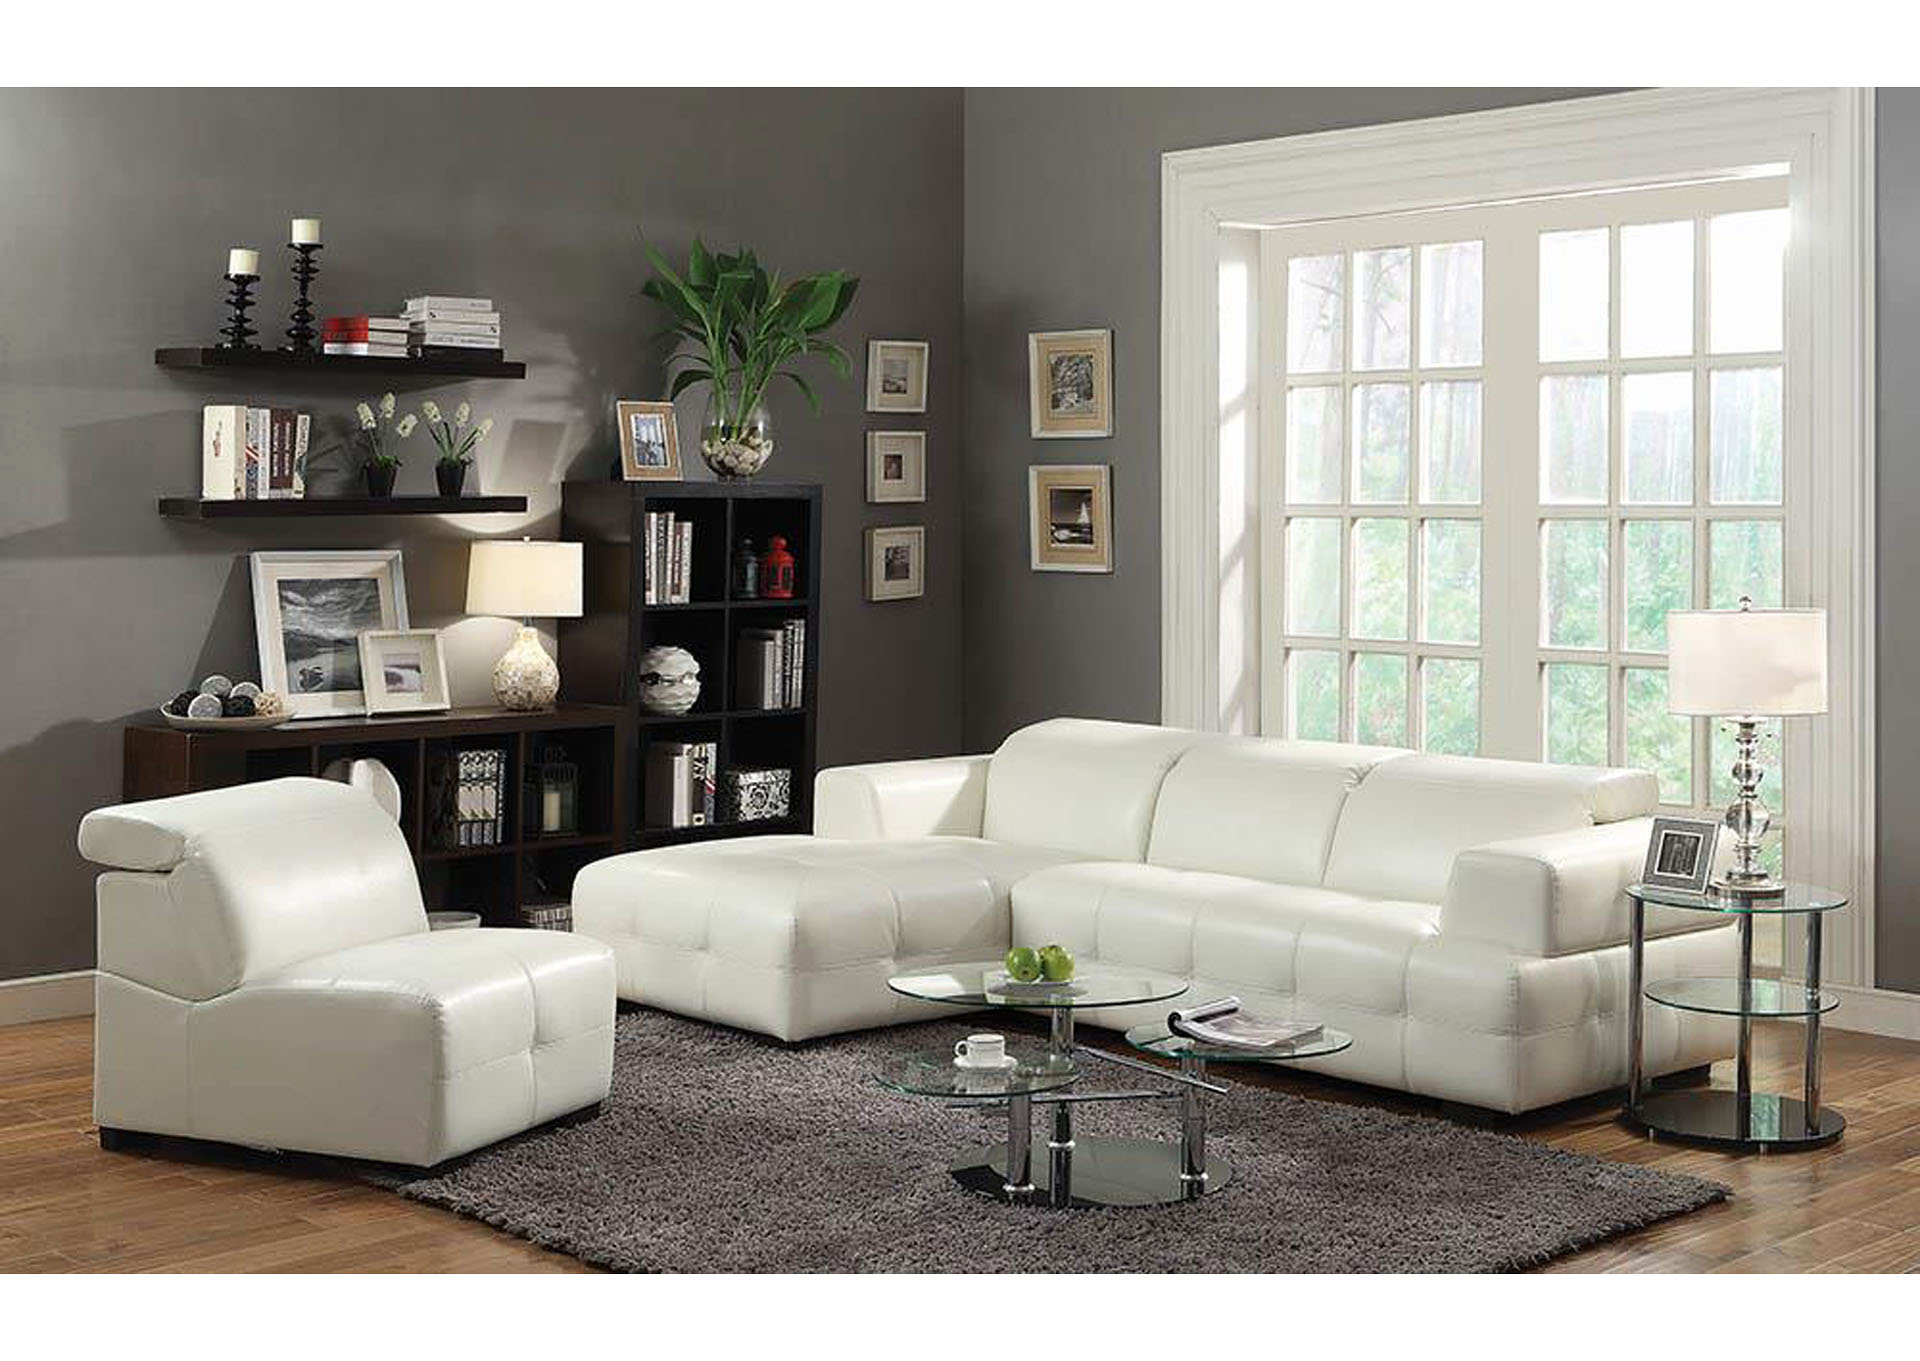 Darby White Sectional,Coaster Furniture